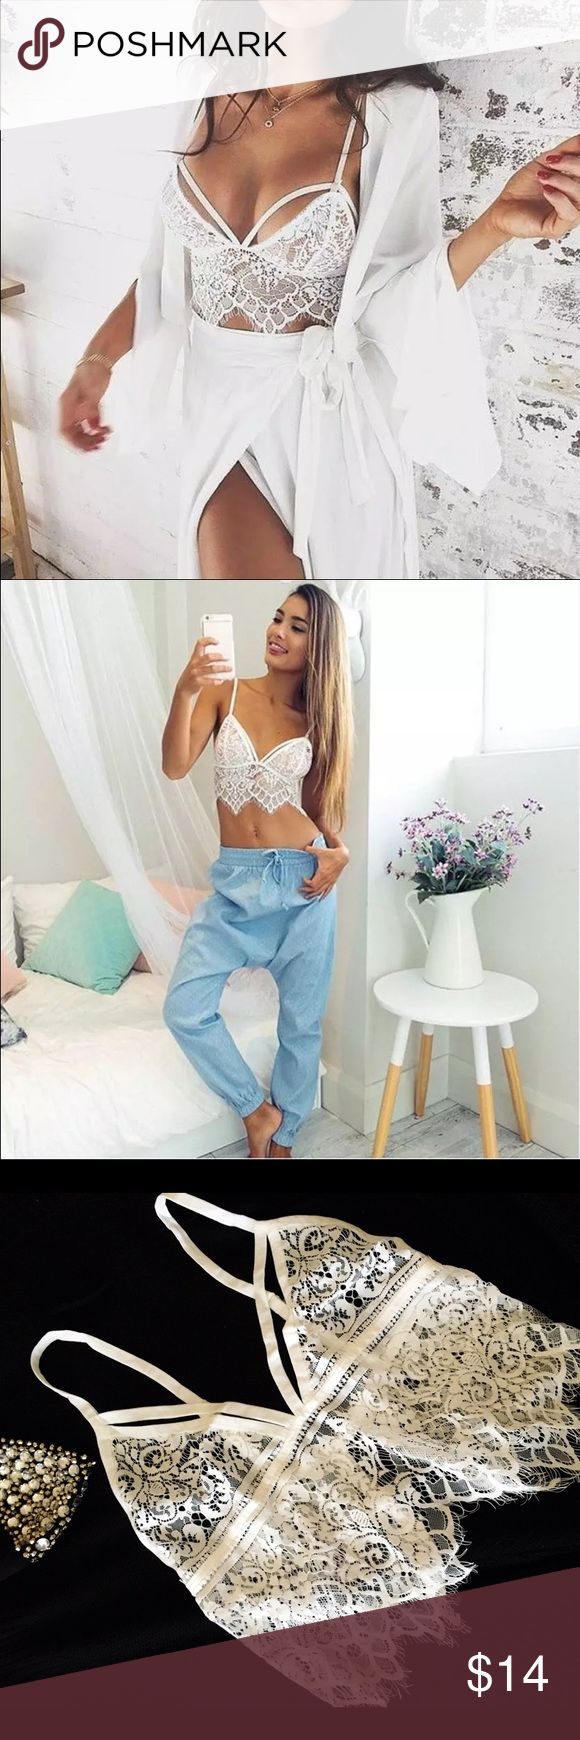 ONE LEFT‼️Gorgeous Sheer underwear crop top White Sheer lace underwear crop top, medium size. Looks AMAZING and very sexy as underwear. Also it can be worn as a top with bra. It will fit size Small-Medium depending on your cup size. 34-36 B-C.                                                   No trades ❌ Please make all  reasonable offers through OFFER BUTTON✅ Questions about product are welcome✅ Not a Zara, just used for attention. Zara Tops Crop Tops